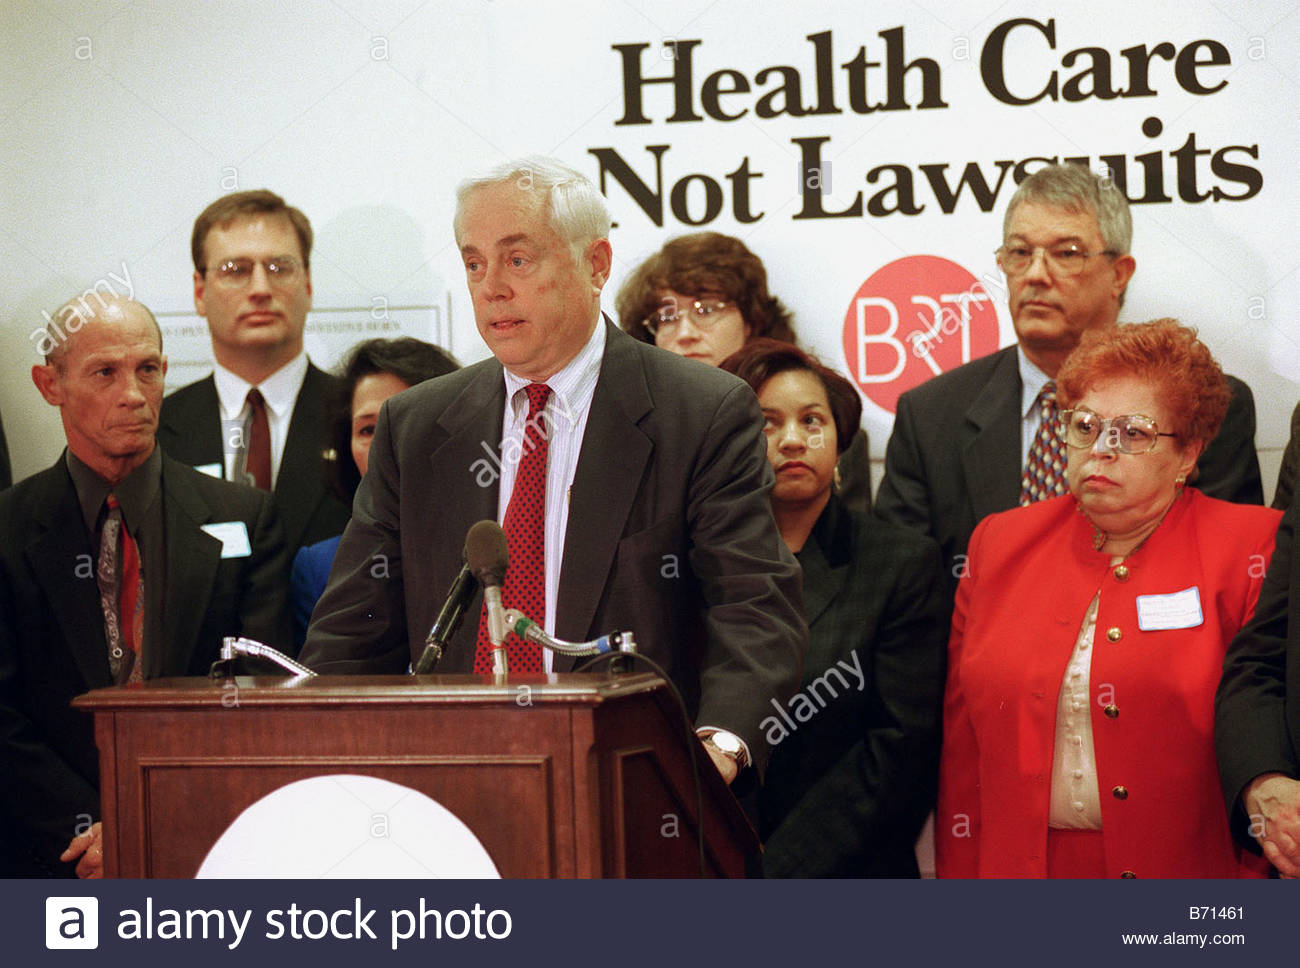 3 7 00 NORWOOD DINGELL MANAGED CARE BILL Robert Burt Chairman of The Business Roundtable and CEO of FMC Corporation - Stock Image